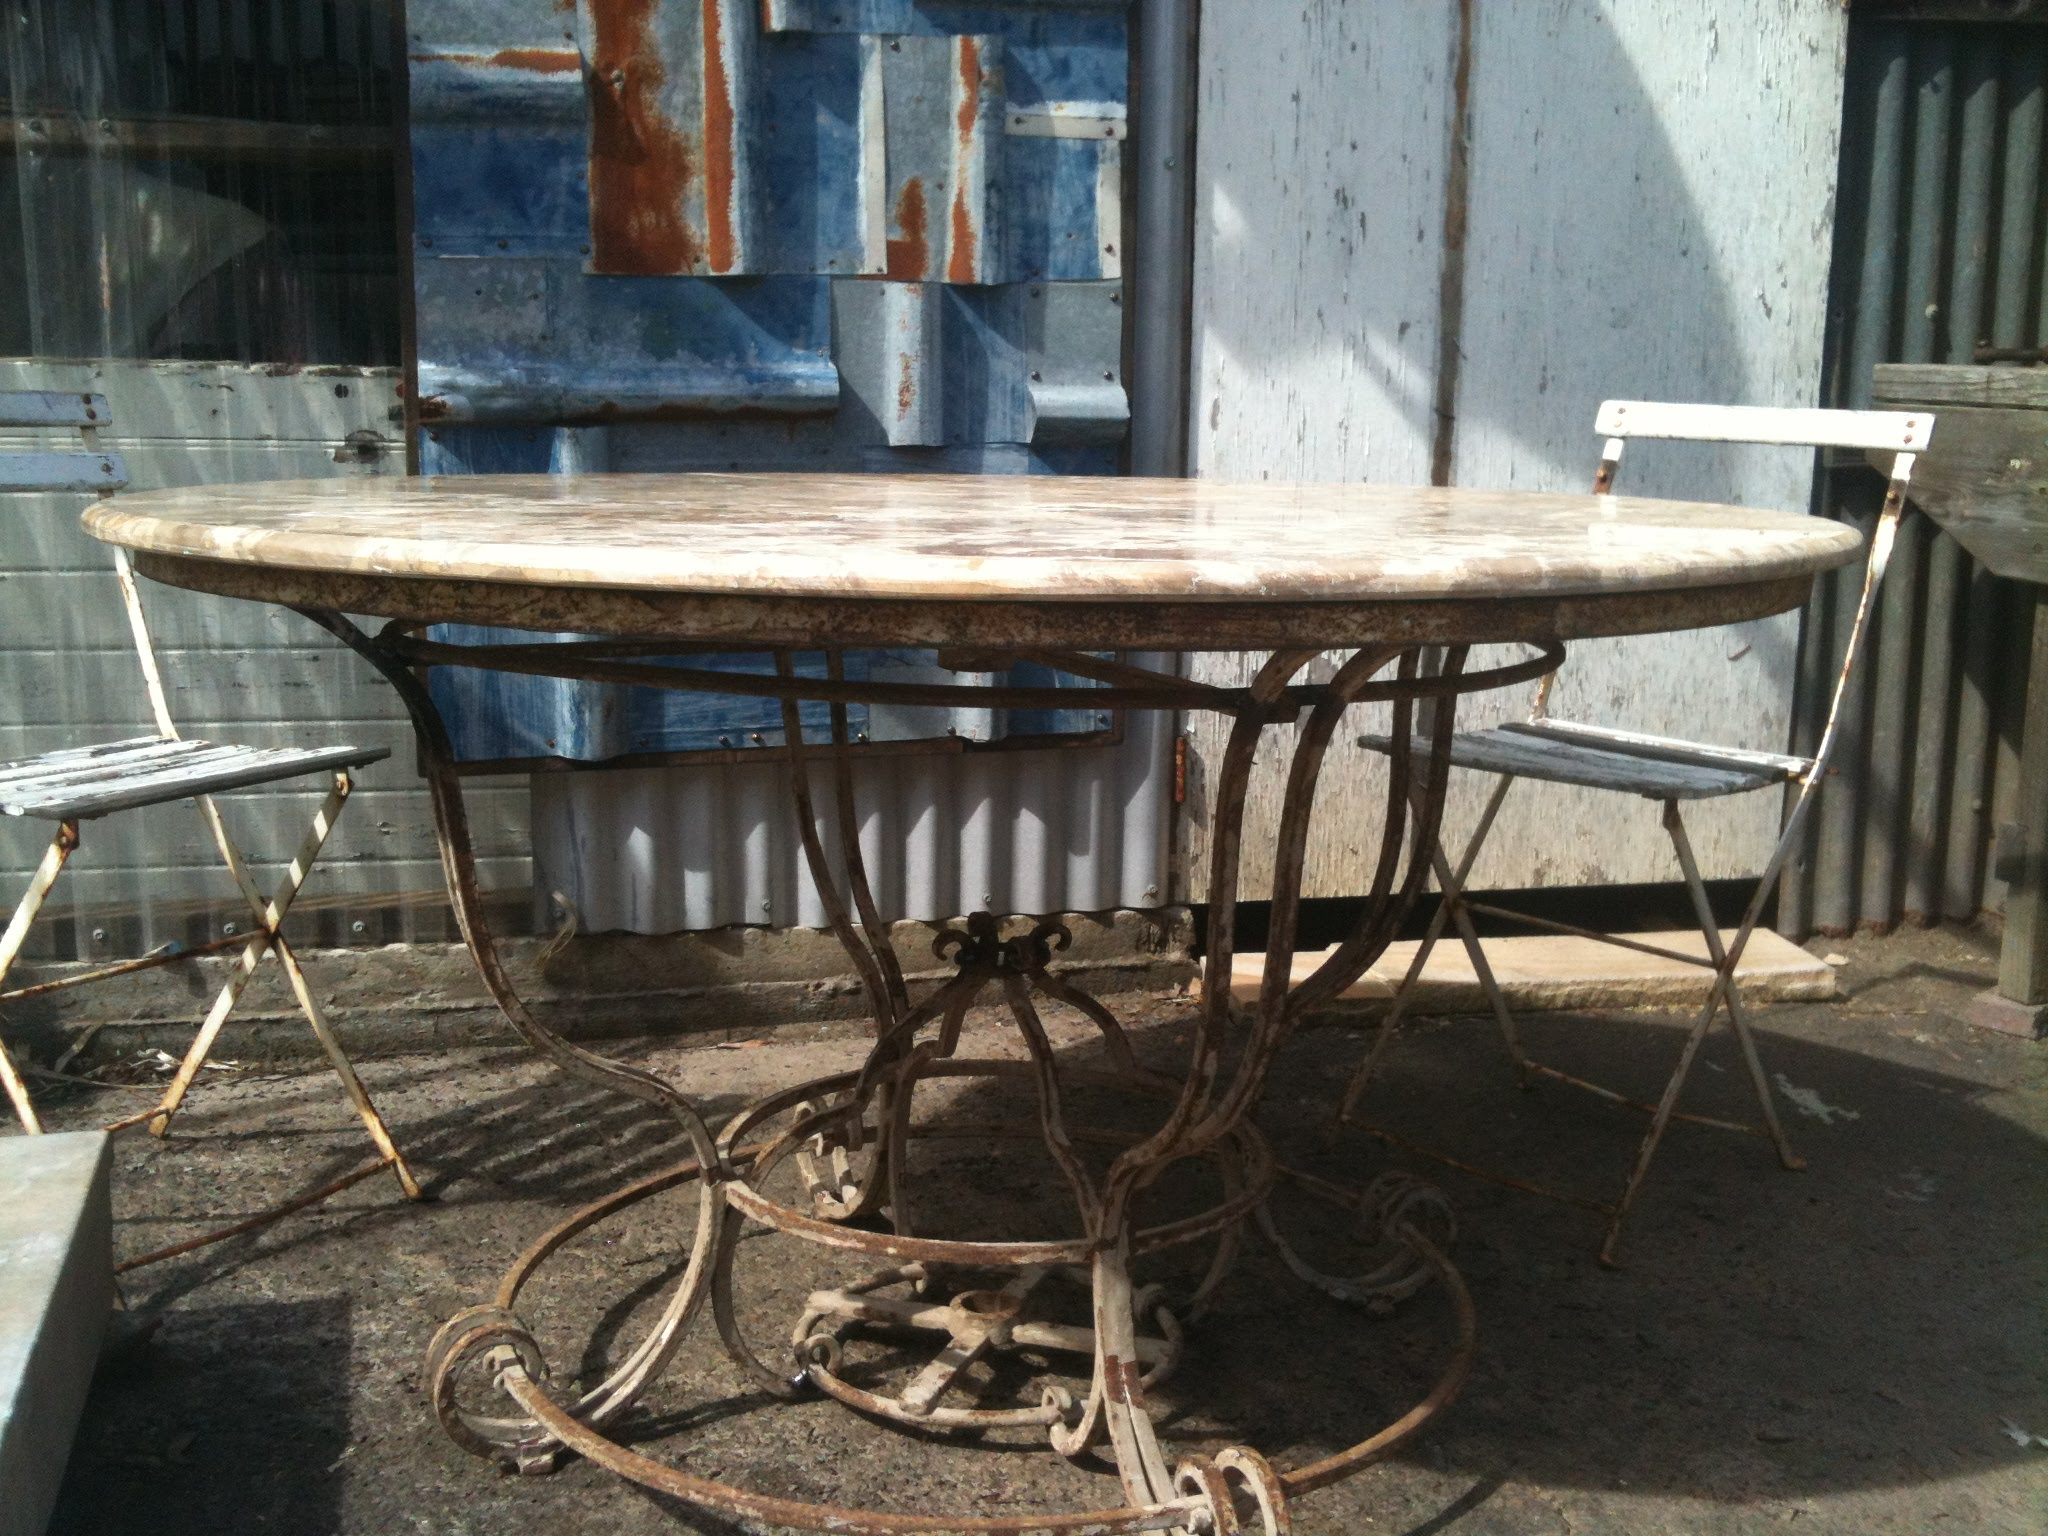 Superb Table Marble and Iron Base French Outdoor table Gorgeous original large round French outdoor table with elaborate iron base and a marble top